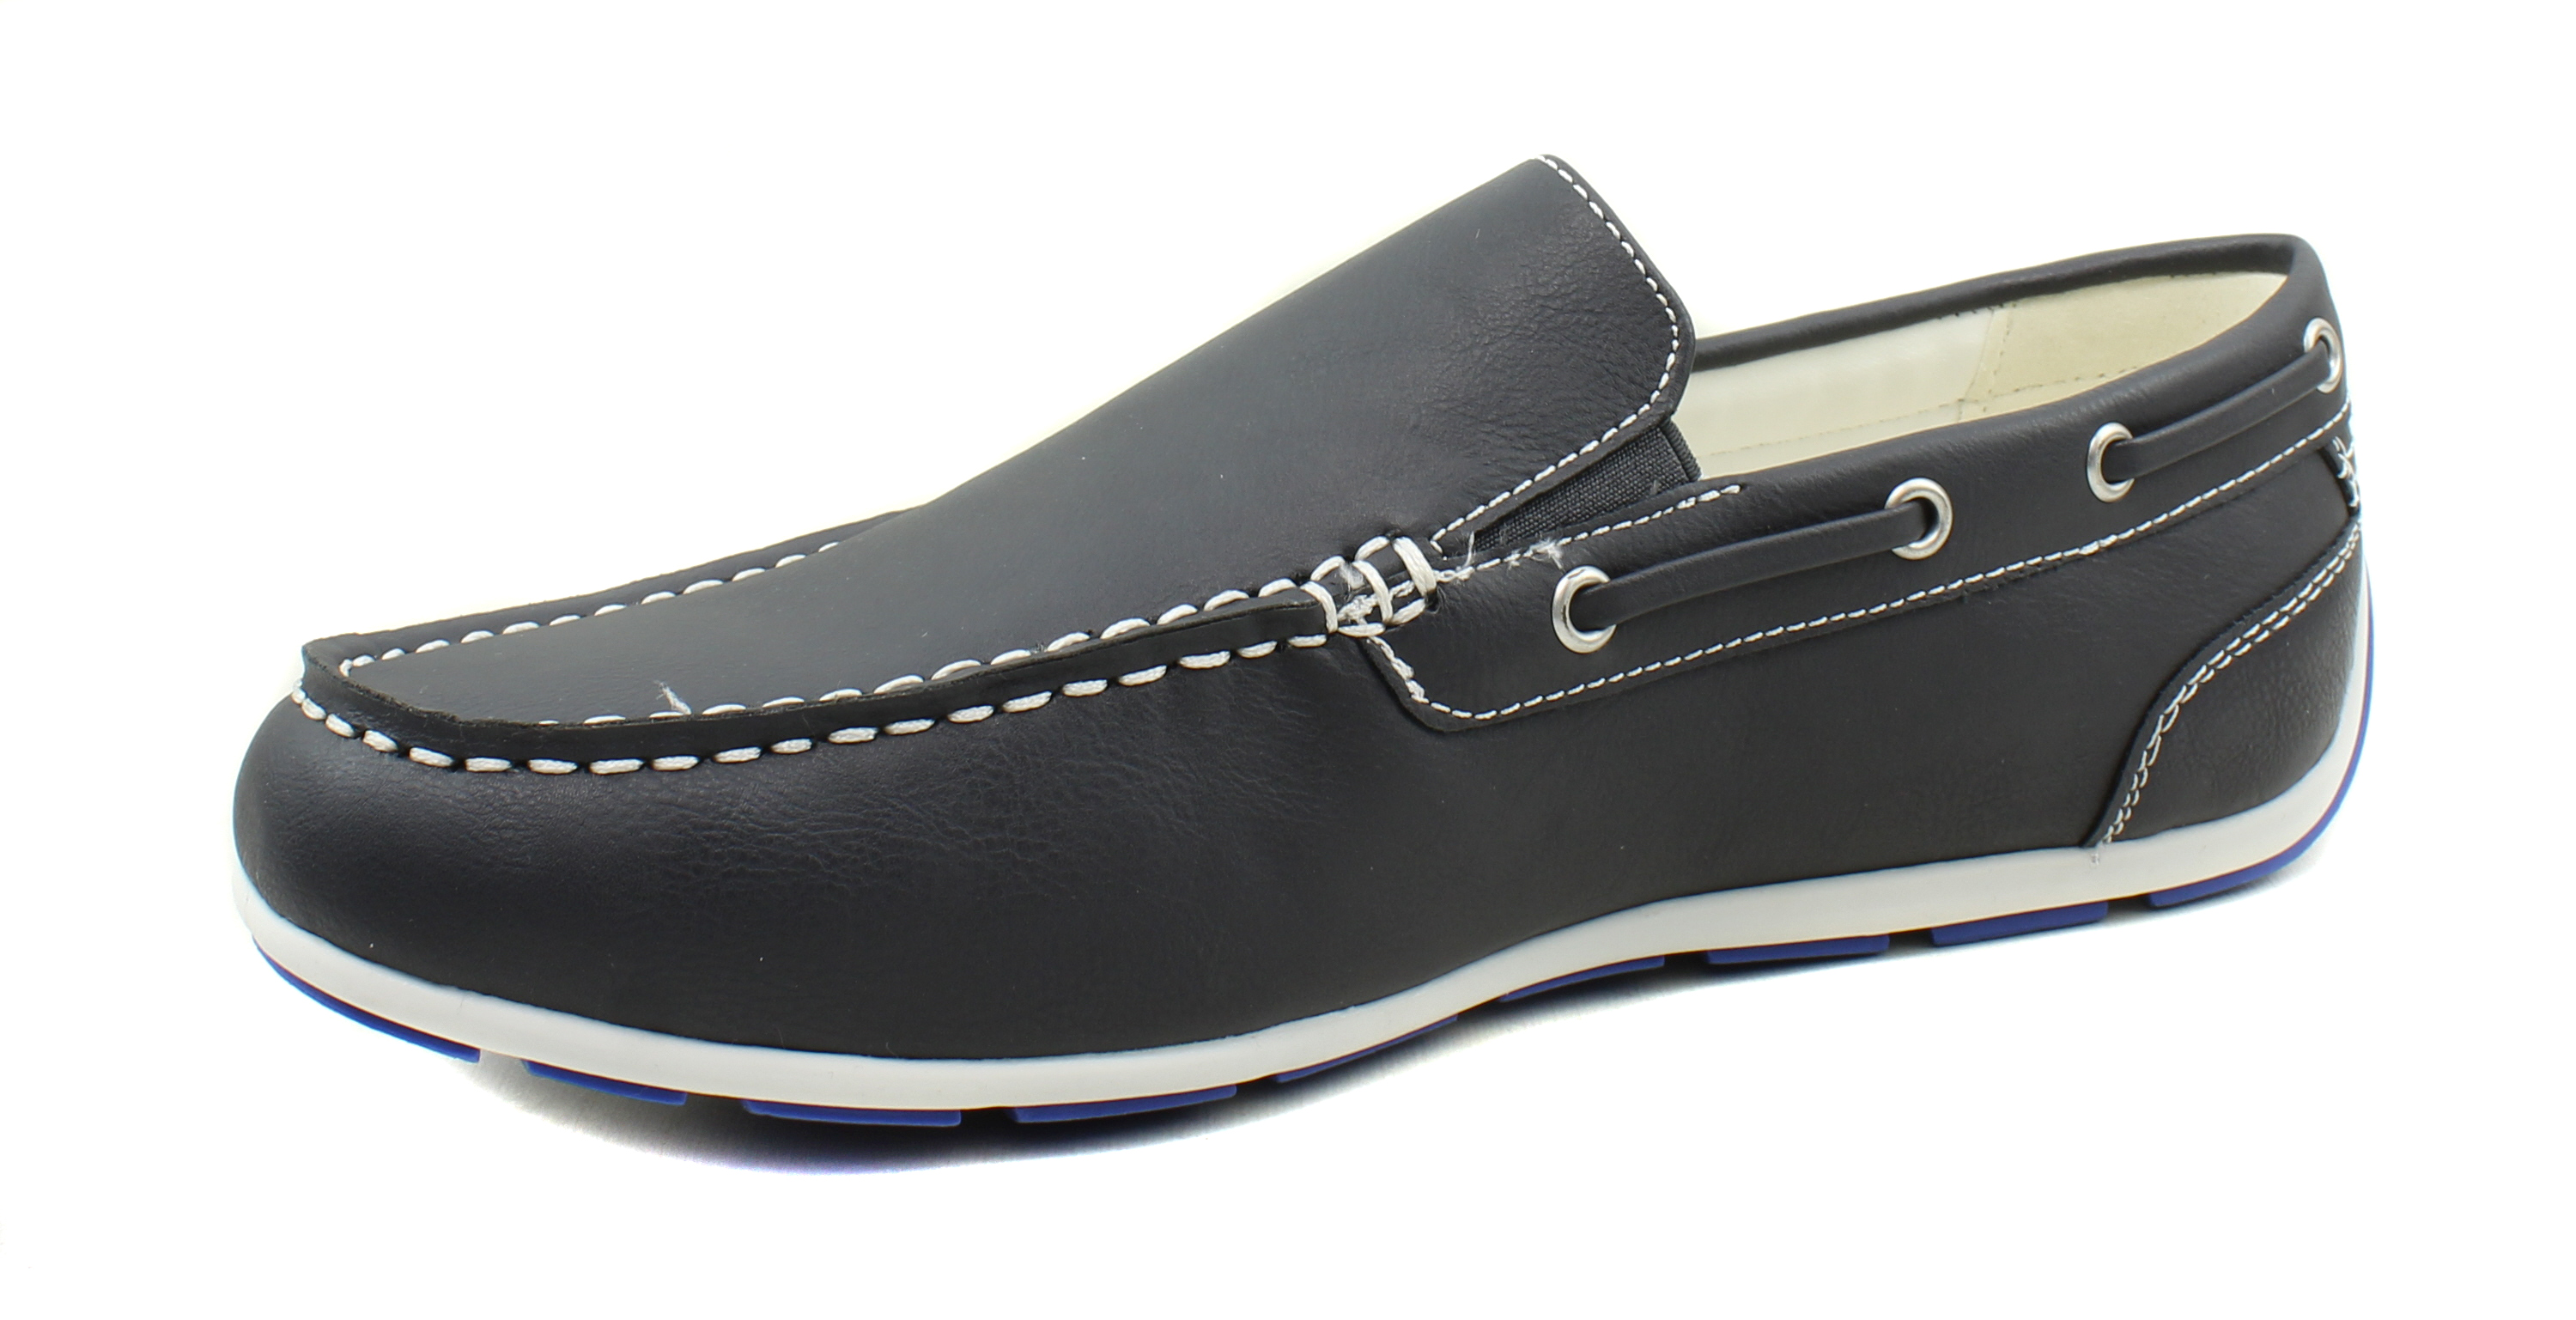 GBX-Mens-Ludlam-Casual-Moc-Toe-Slip-On-Boat-Shoe-Driving-Loafers thumbnail 23